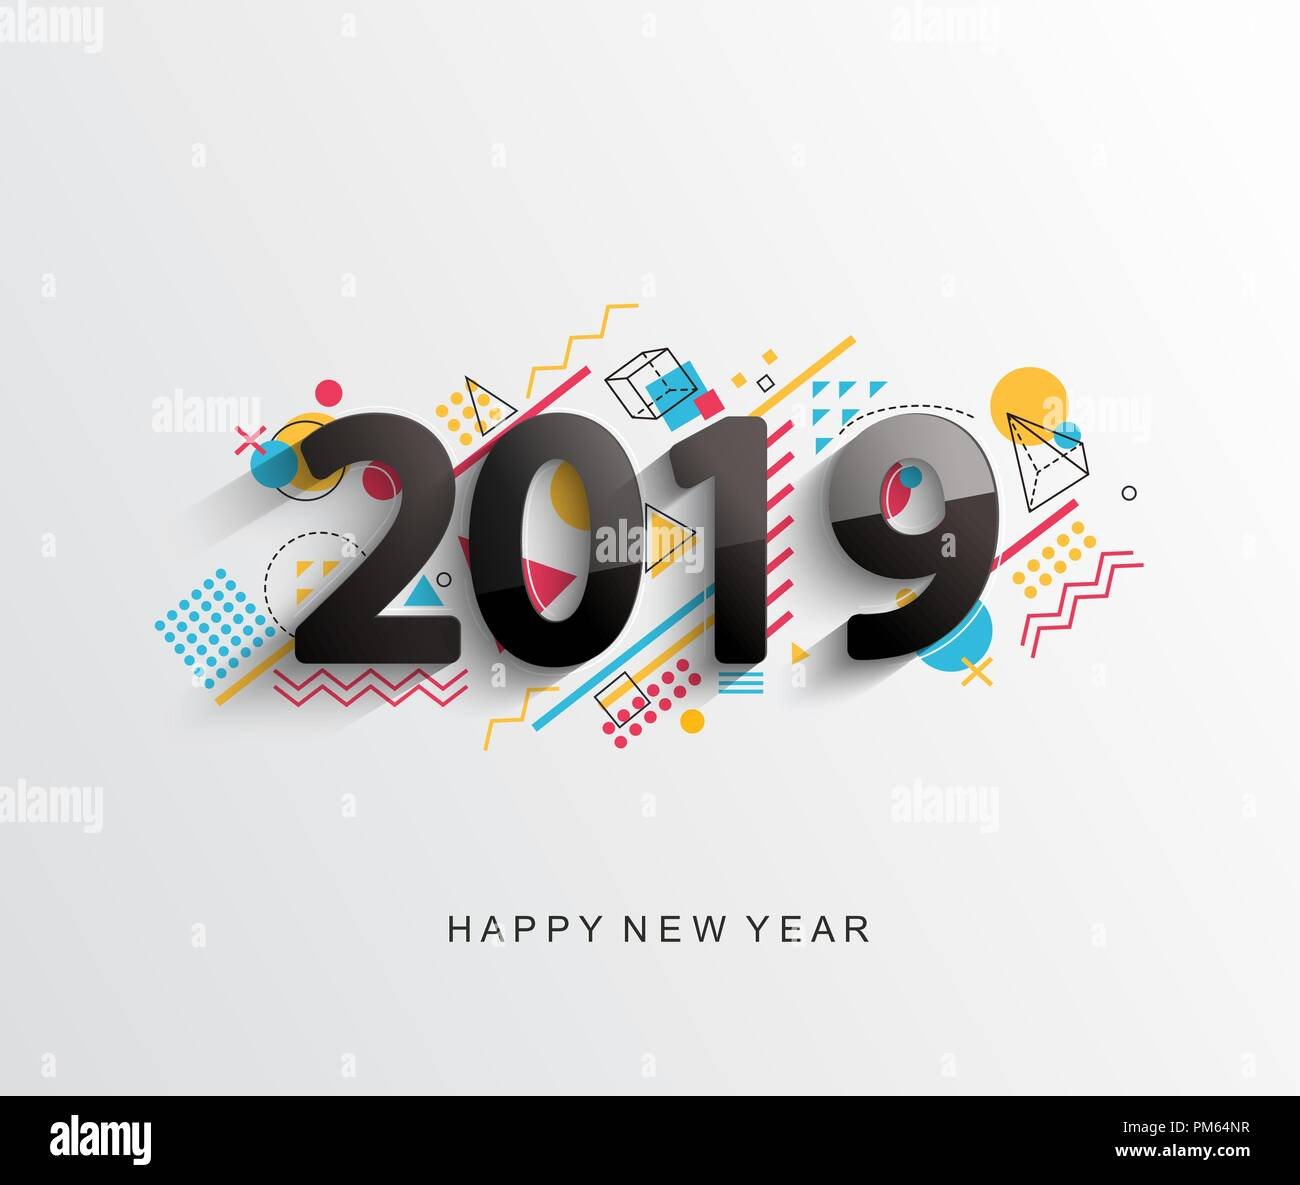 modern creative new 2019 year design card with geometric shapes on background for your seasonal holidays